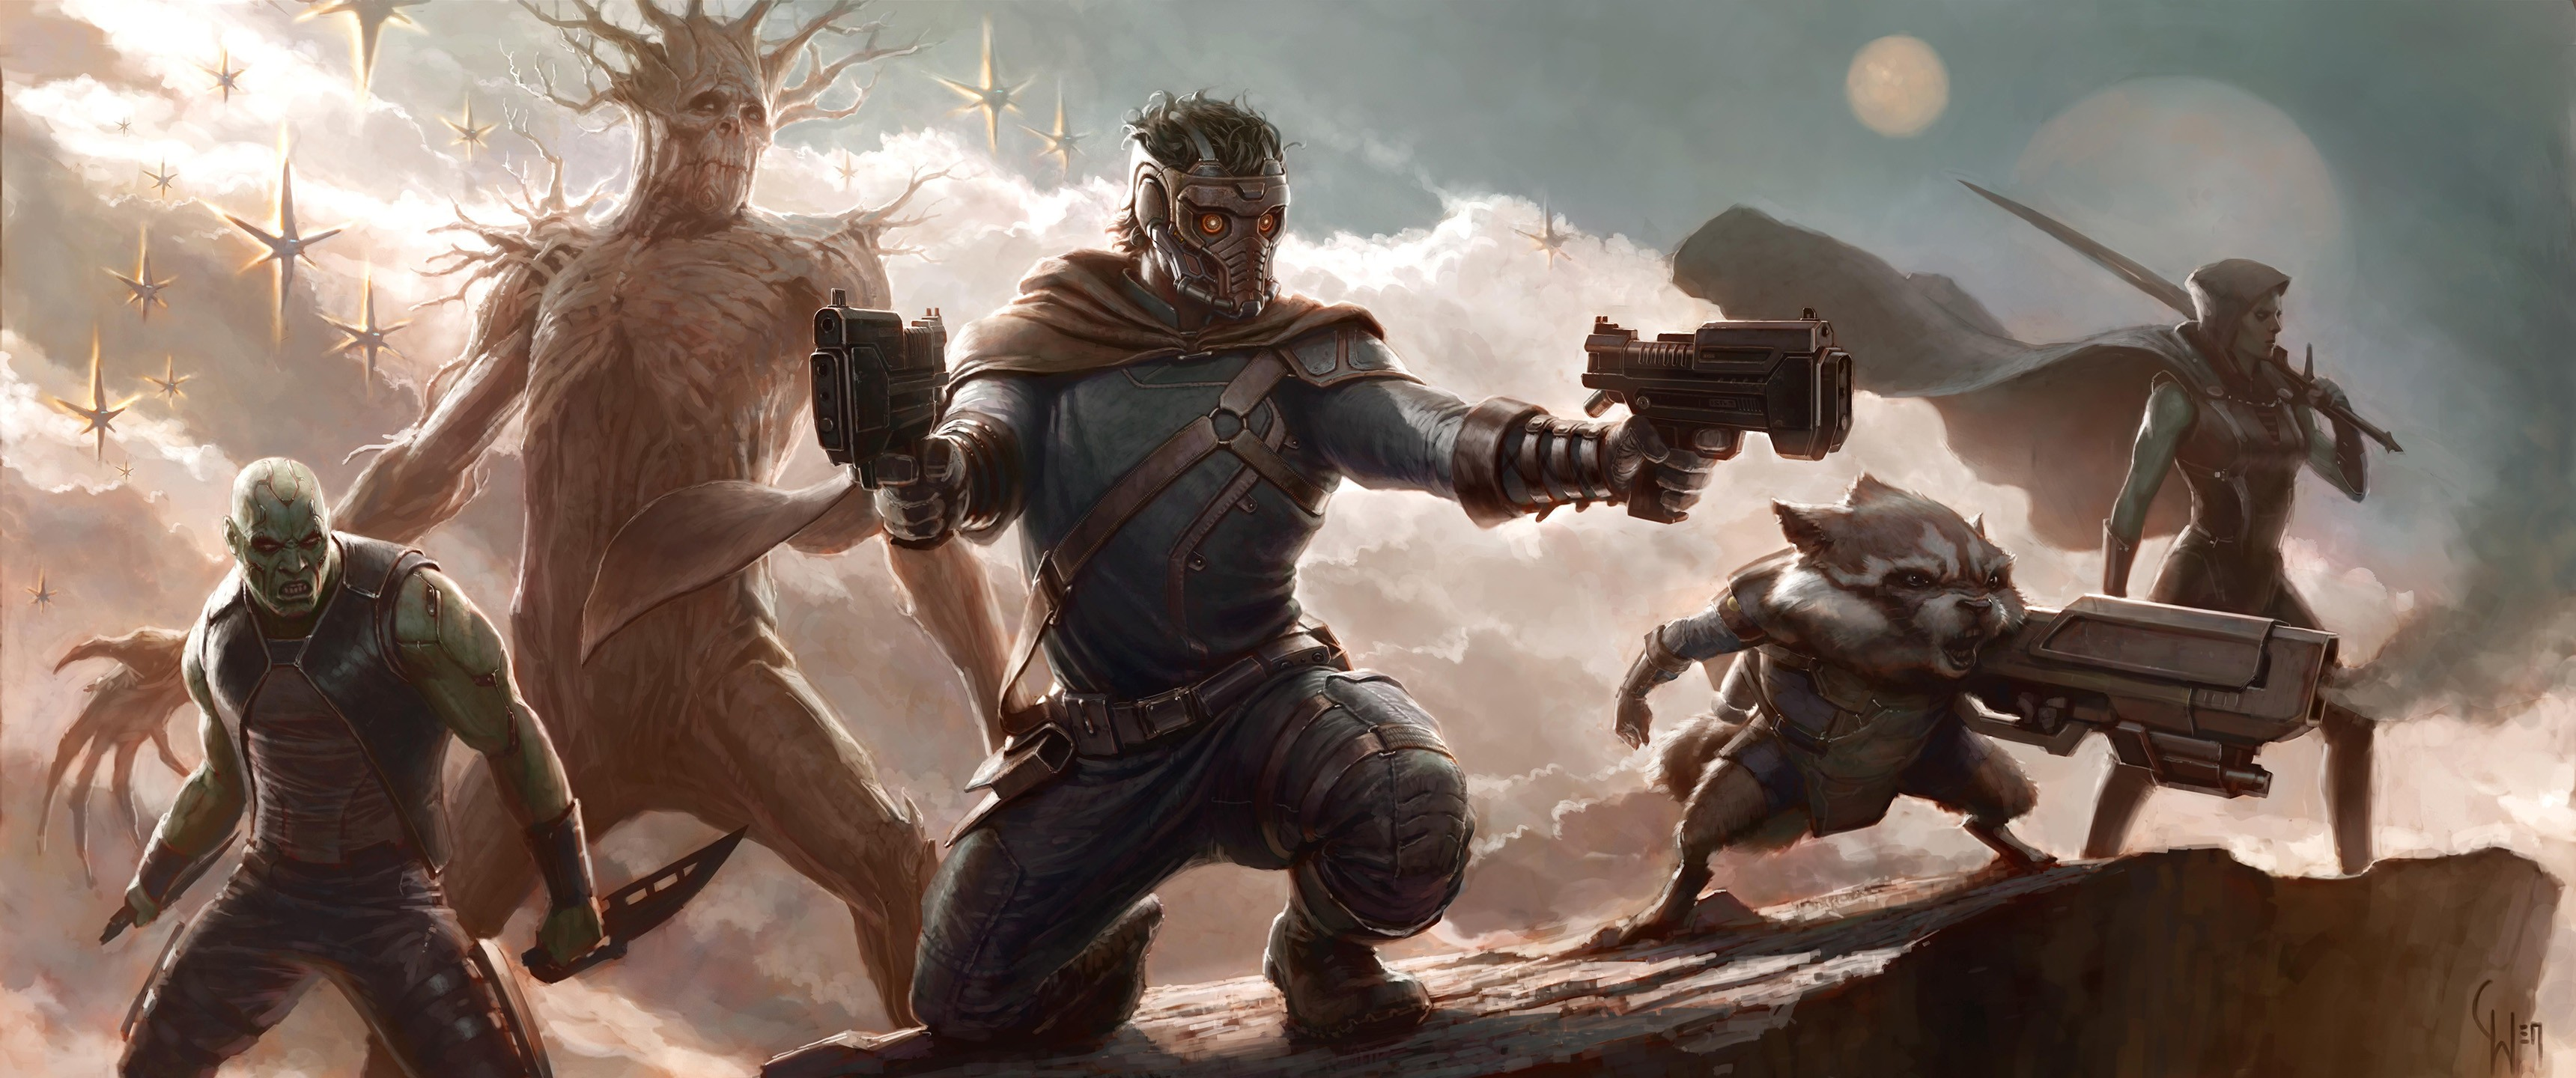 General 3440x1440 Guardians of the Galaxy movies science fiction Marvel Cinematic Universe